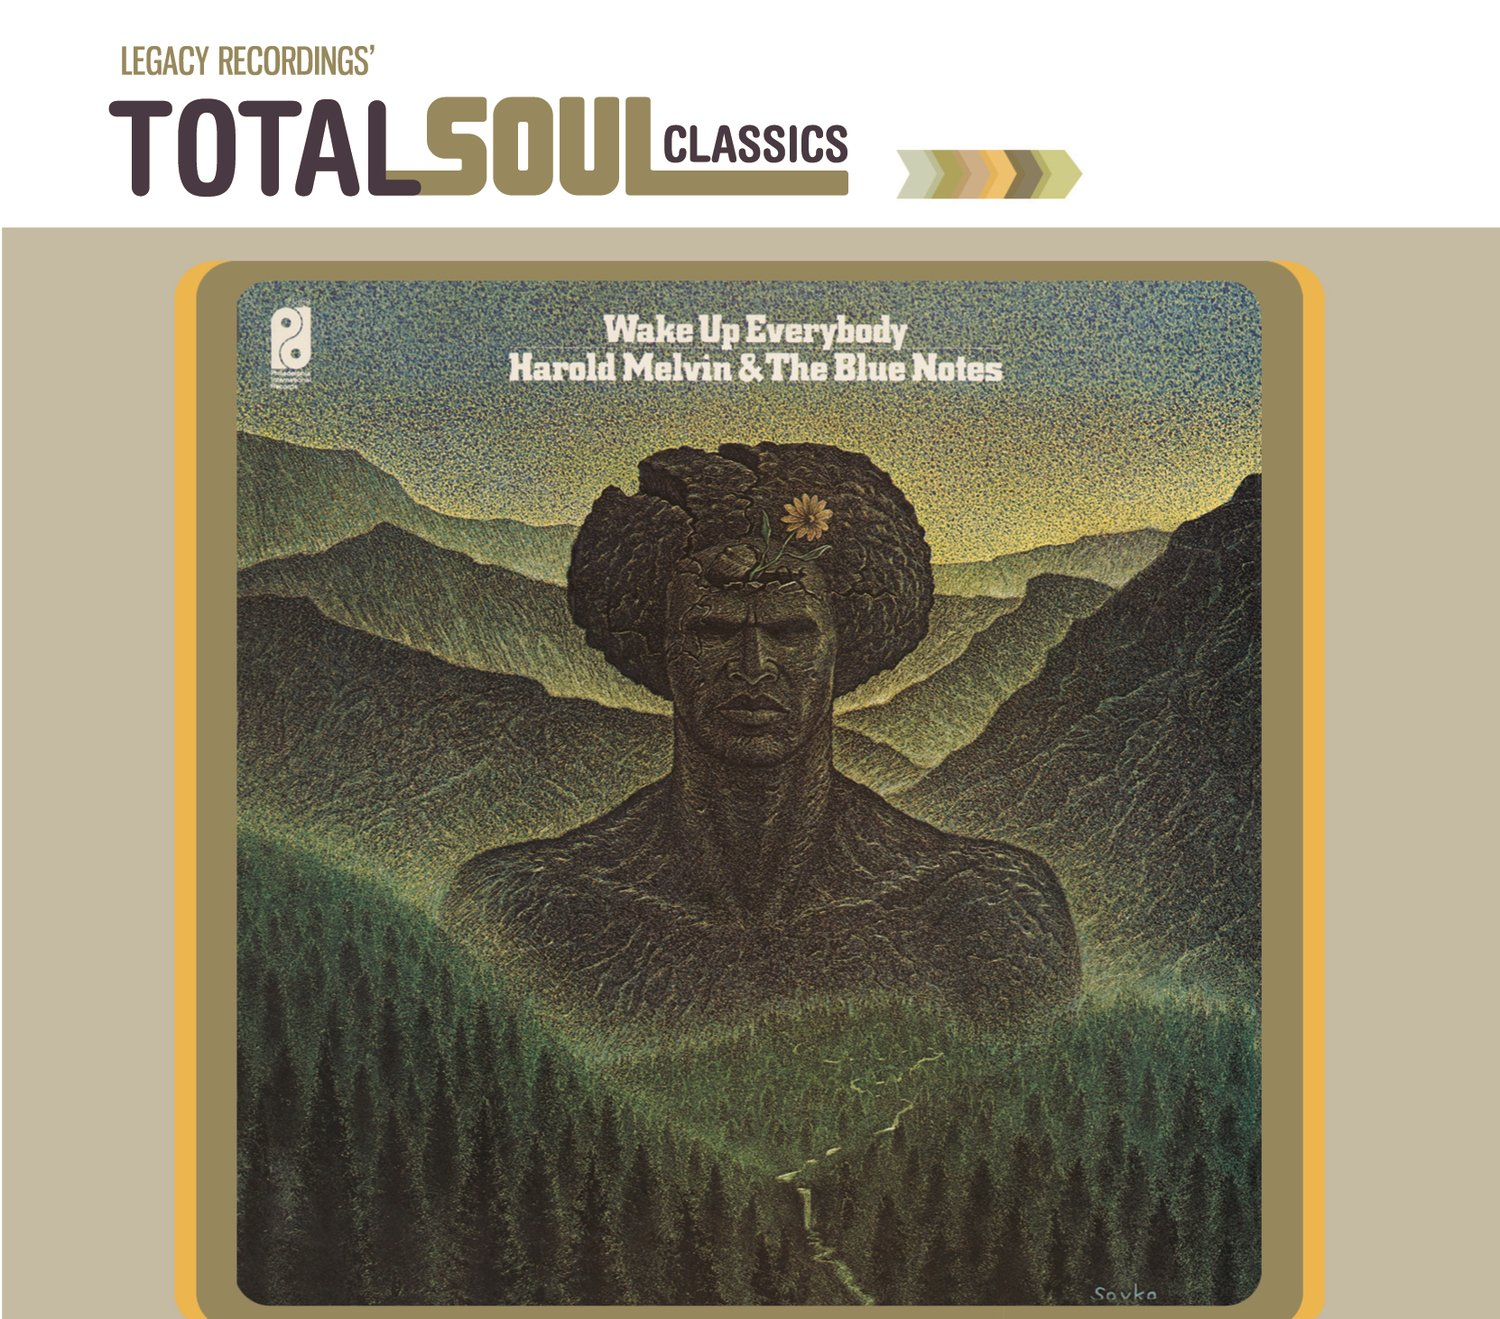 Total Soul Classics - Wake Up Everybody by Legacy